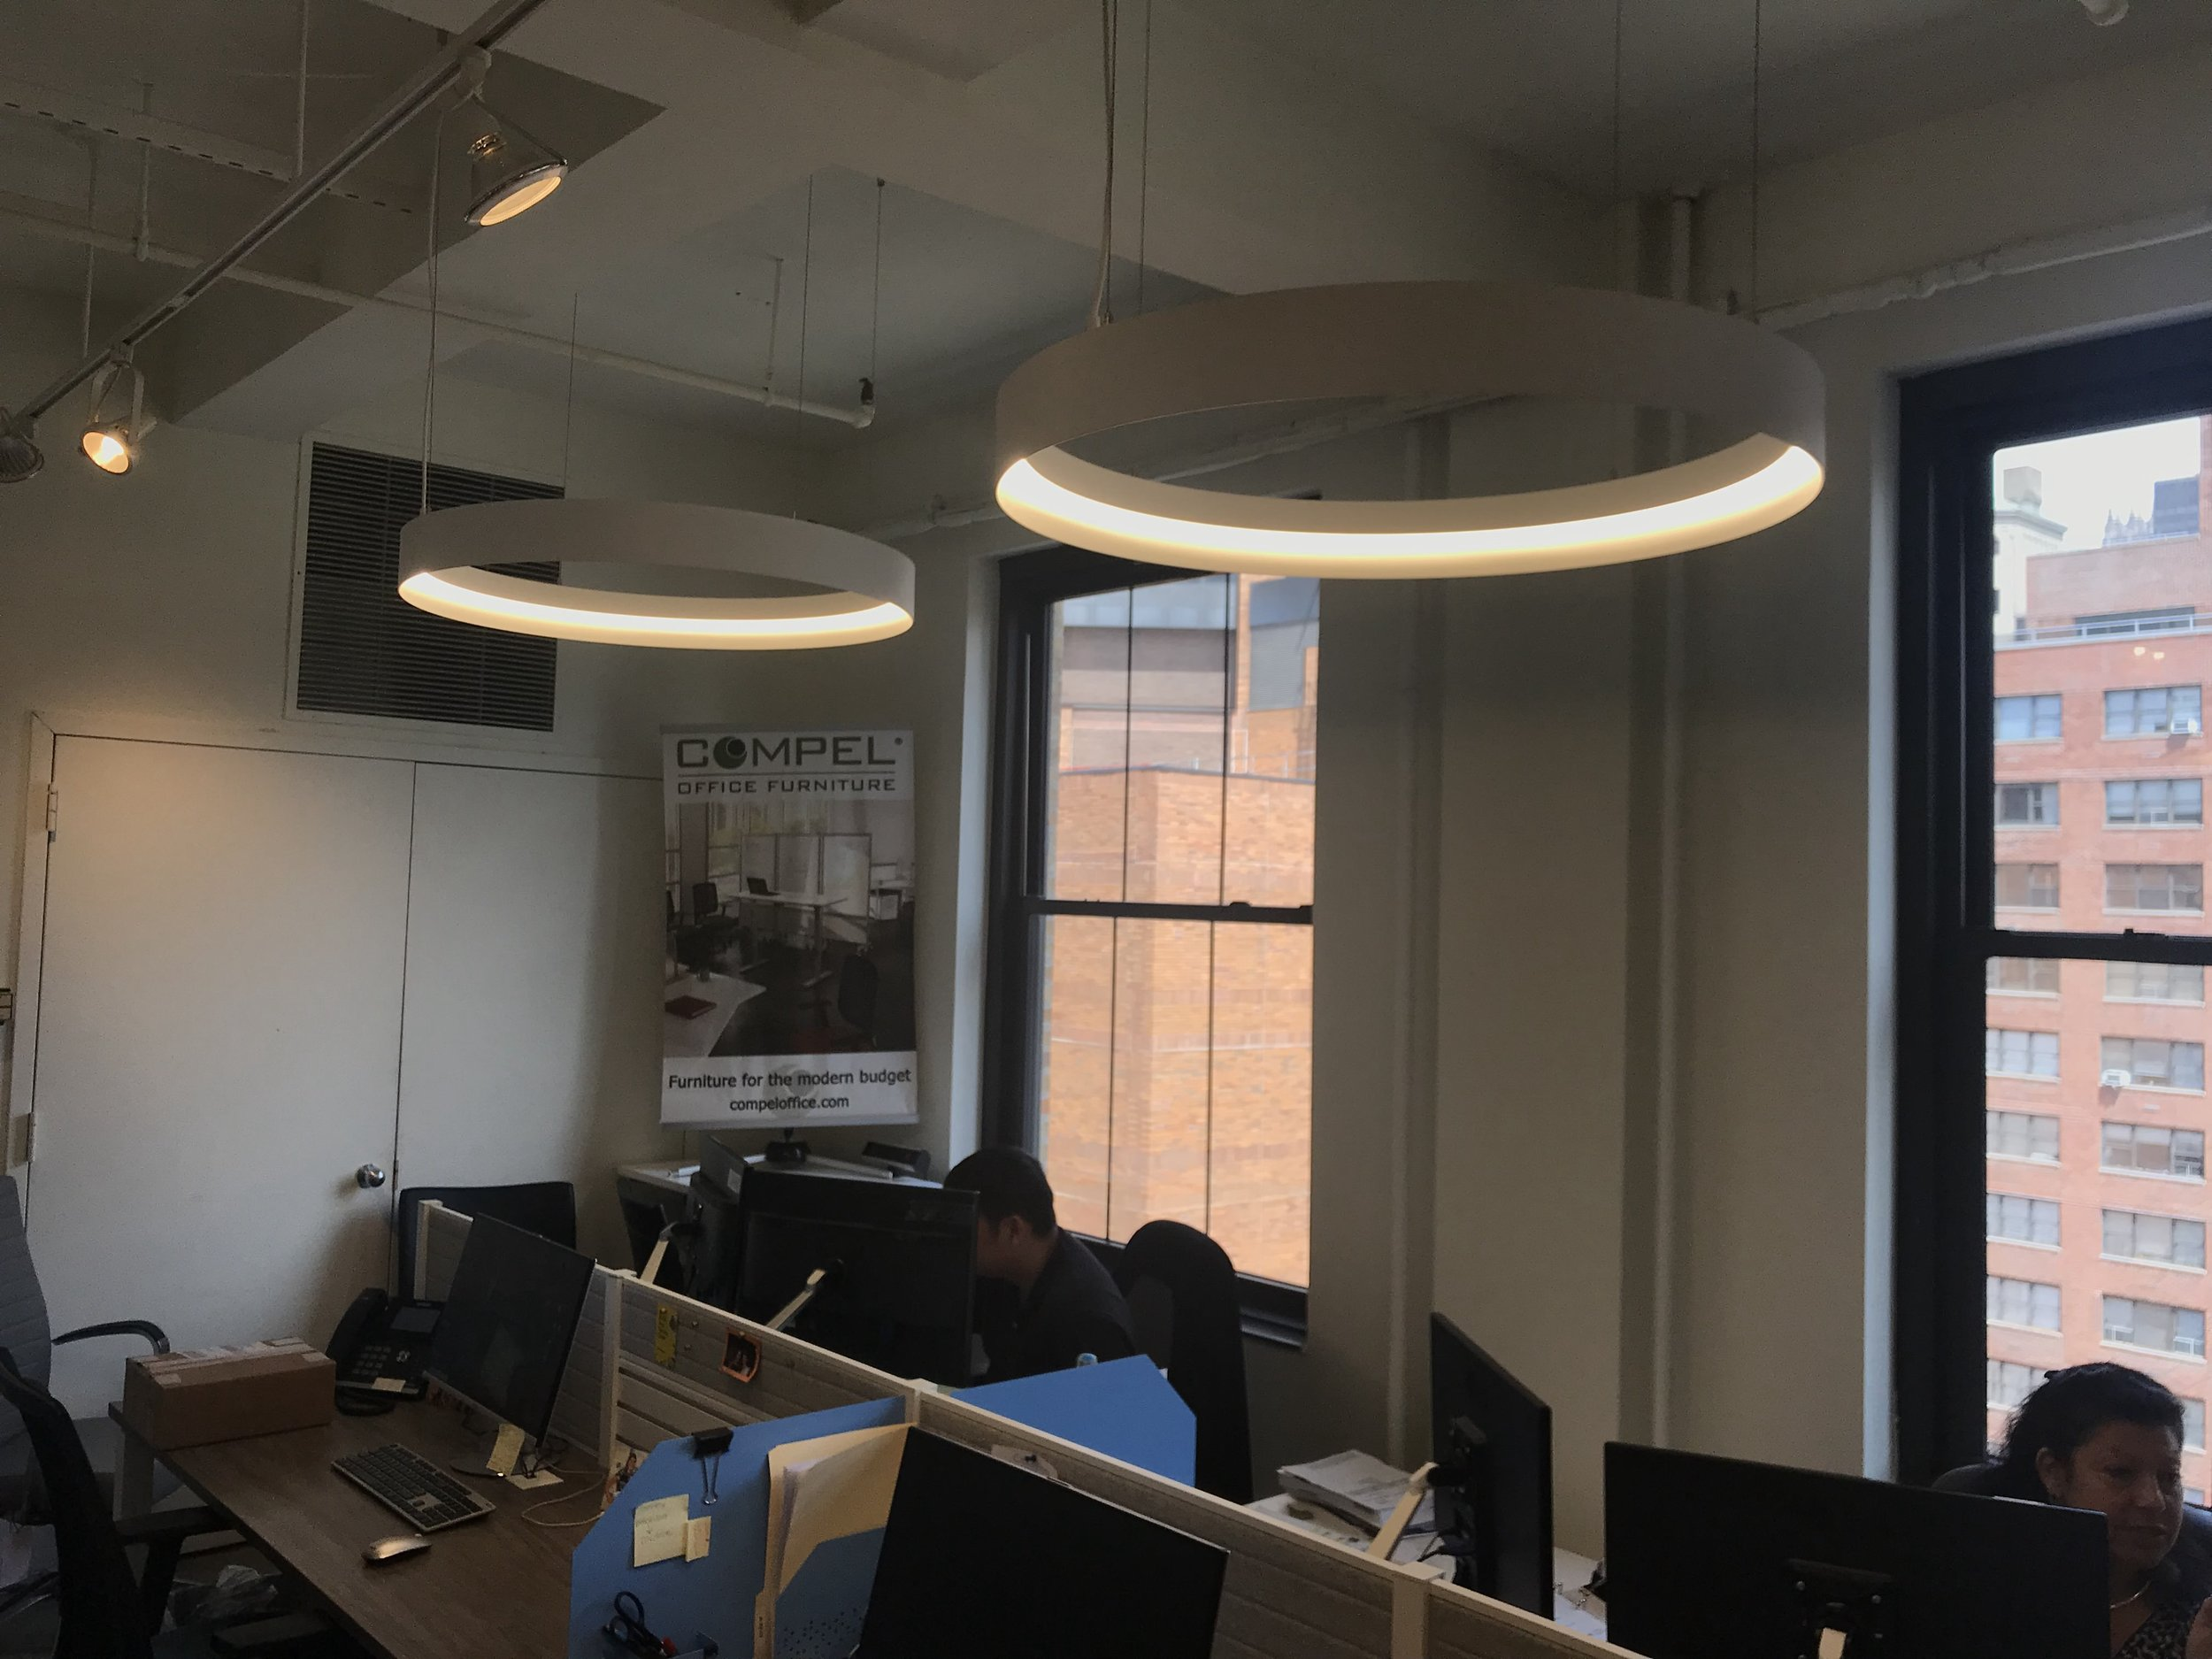 Right next to the Orion, the Gibson workspace also includes two Halo fixtures. These fixtures give the office a very futuristic feel when you see them. They are beautiful open rings of light who's colors will add a fascinating pop to your space.